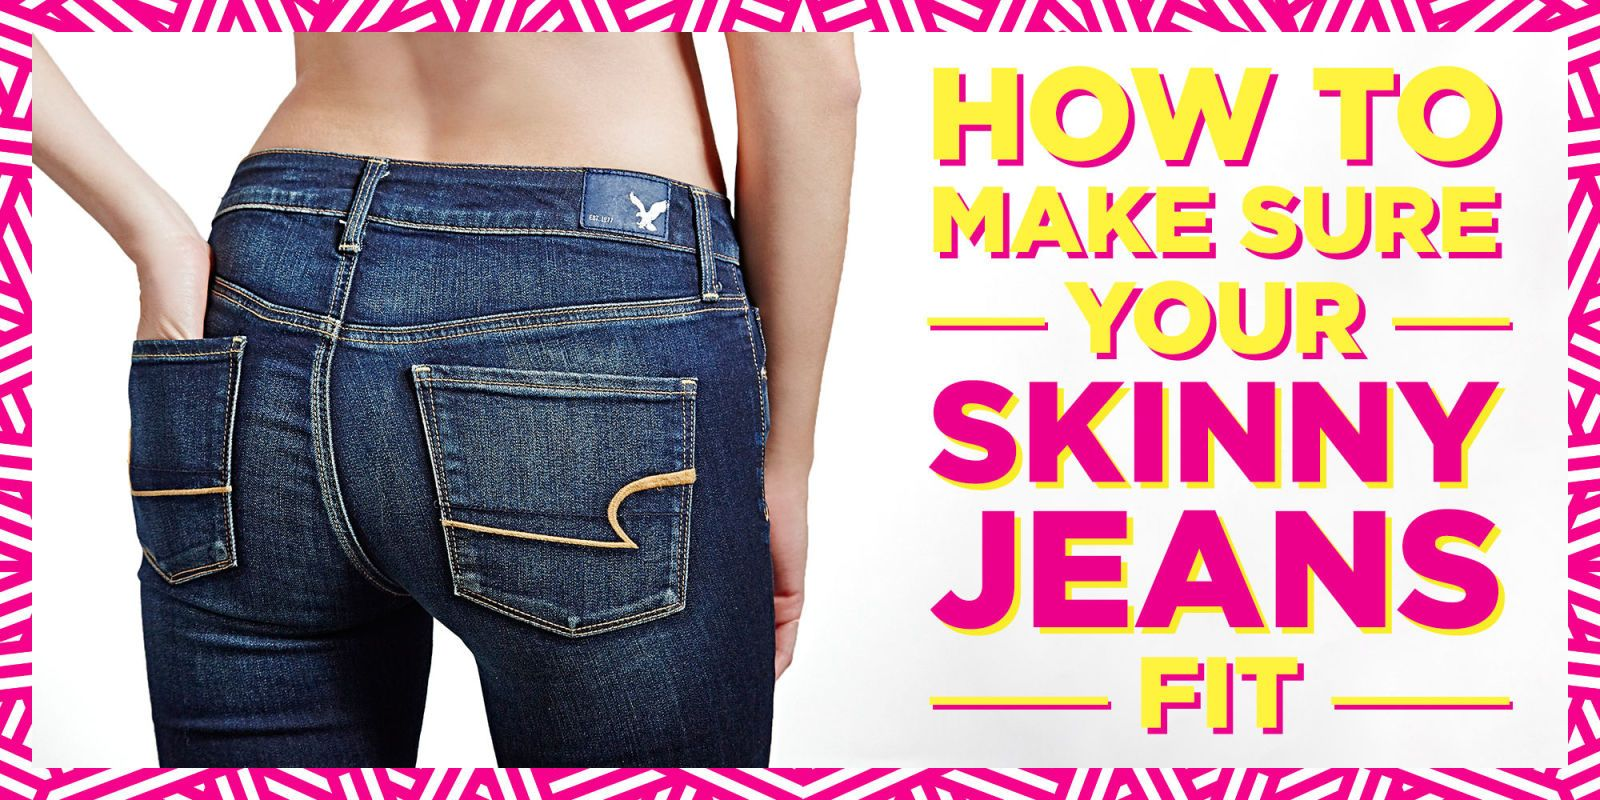 Best skinny jeans that don't go baggy